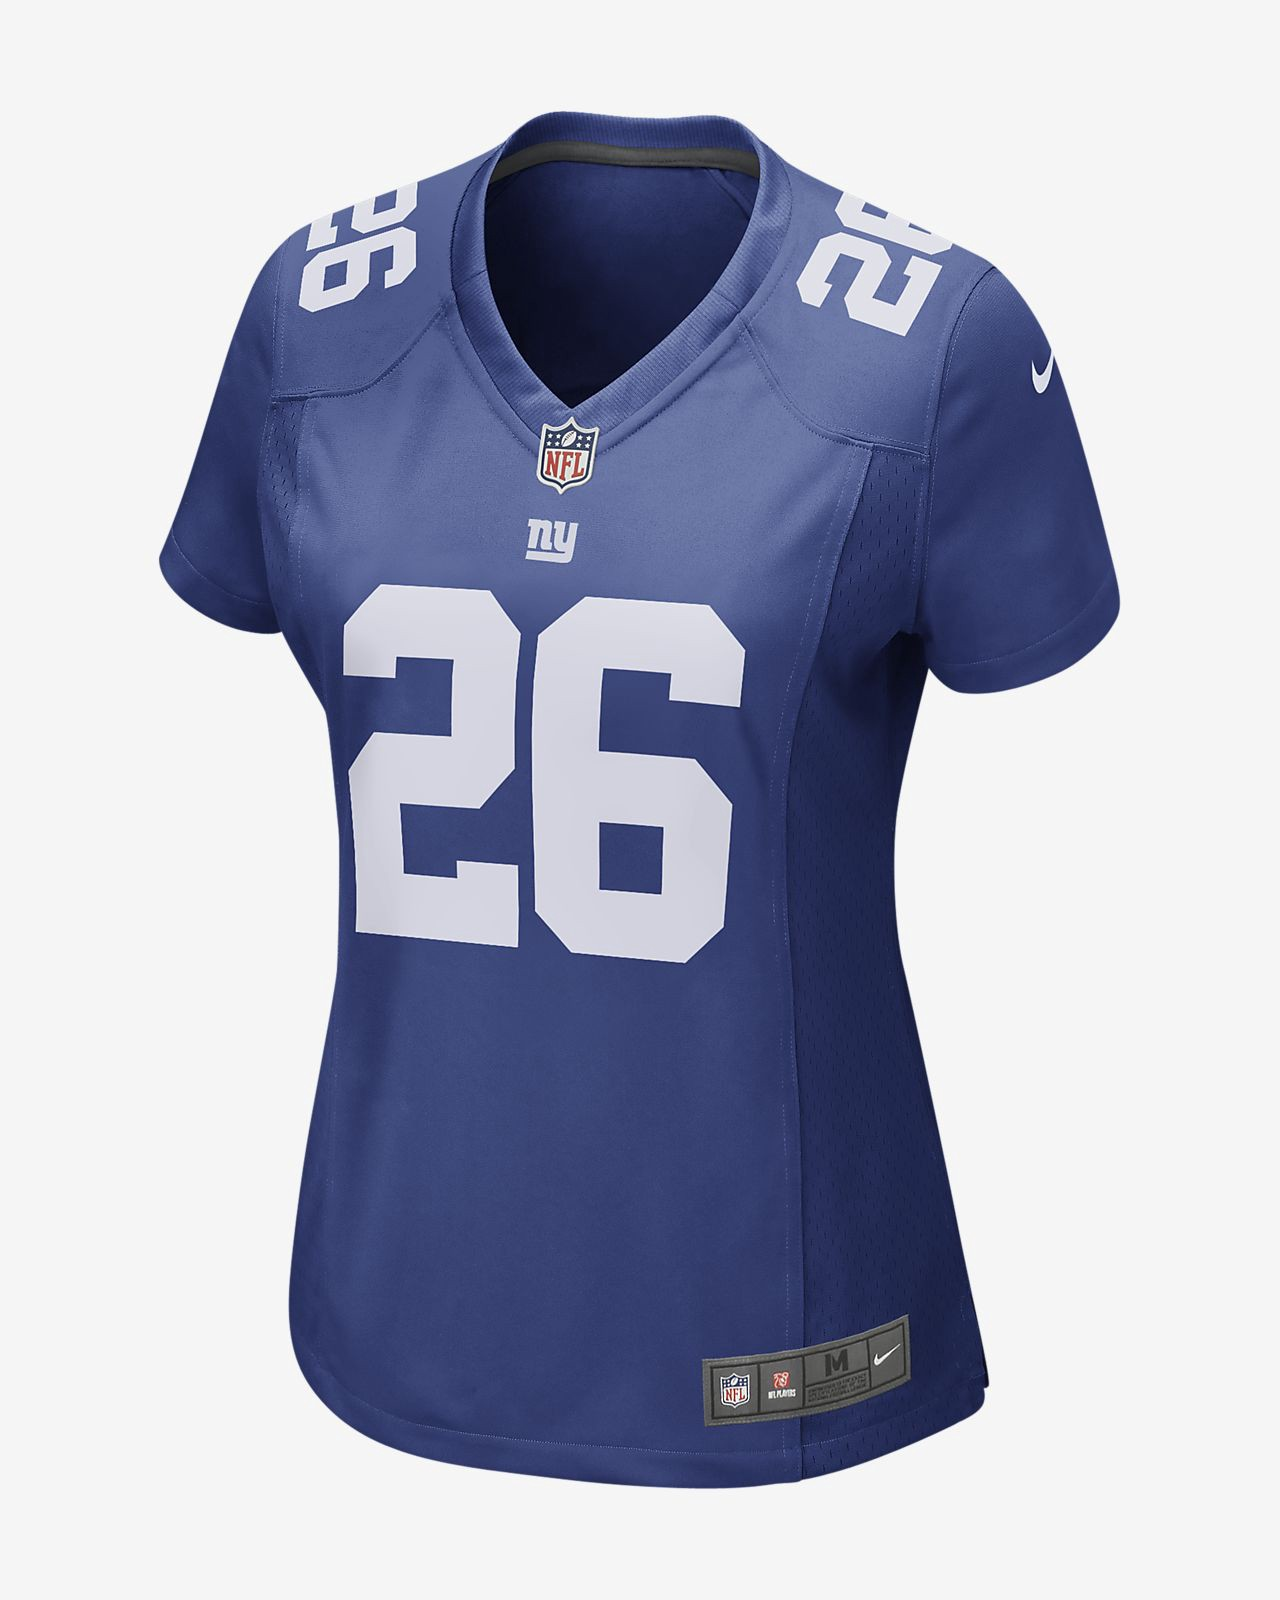 d340403976c Nike Nfl New York Giants Game (Saquon Barkley) Women's Football Jersey -  2Xl (20–22) Blue